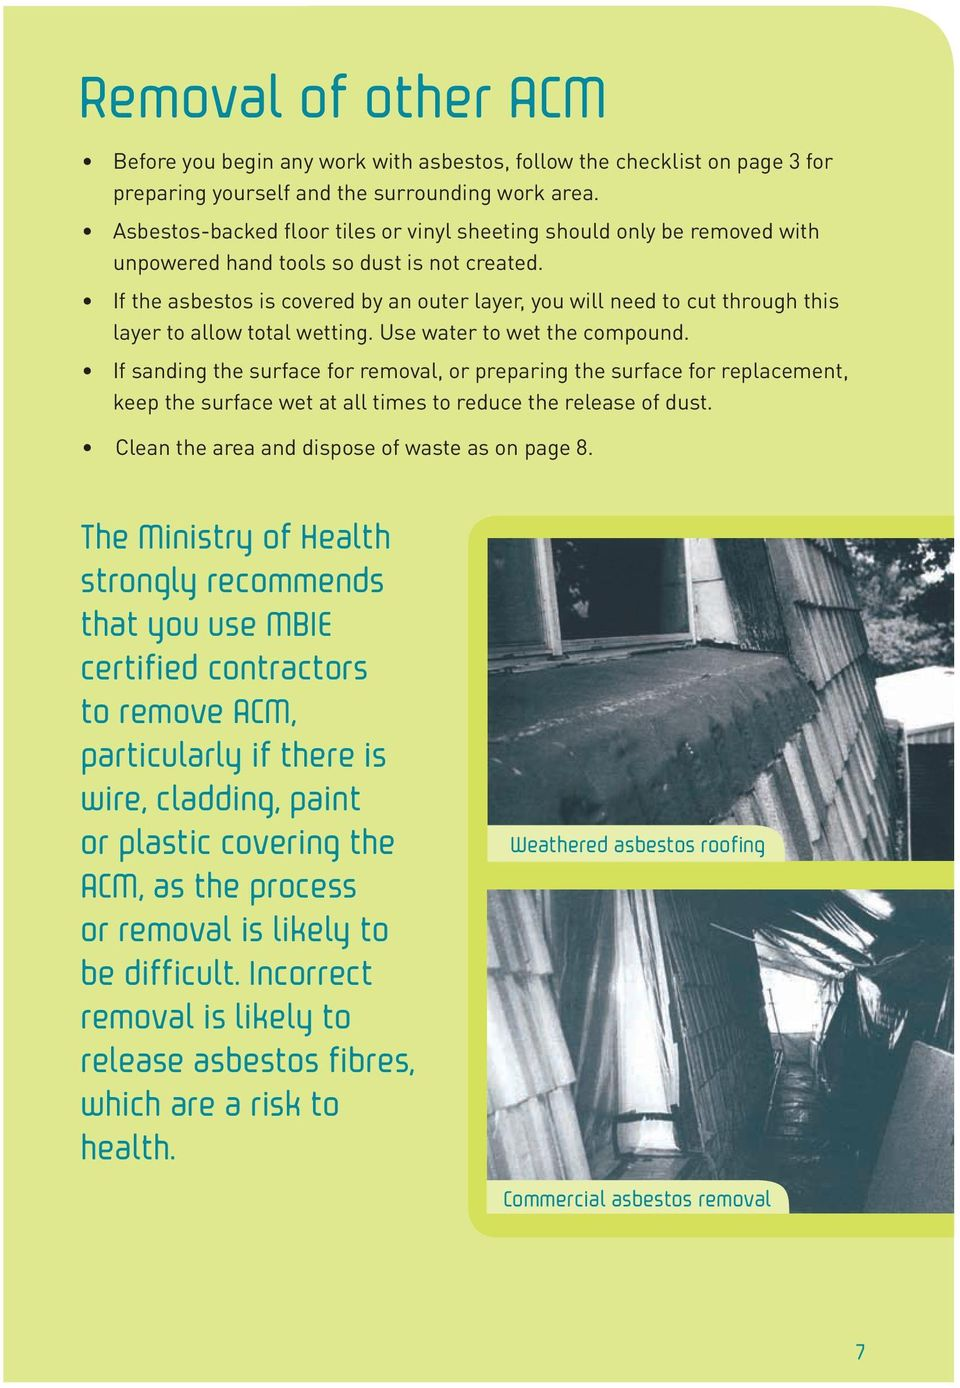 If the asbestos is covered by an outer layer, you will need to cut through this layer to allow total wetting. Use water to wet the compound.